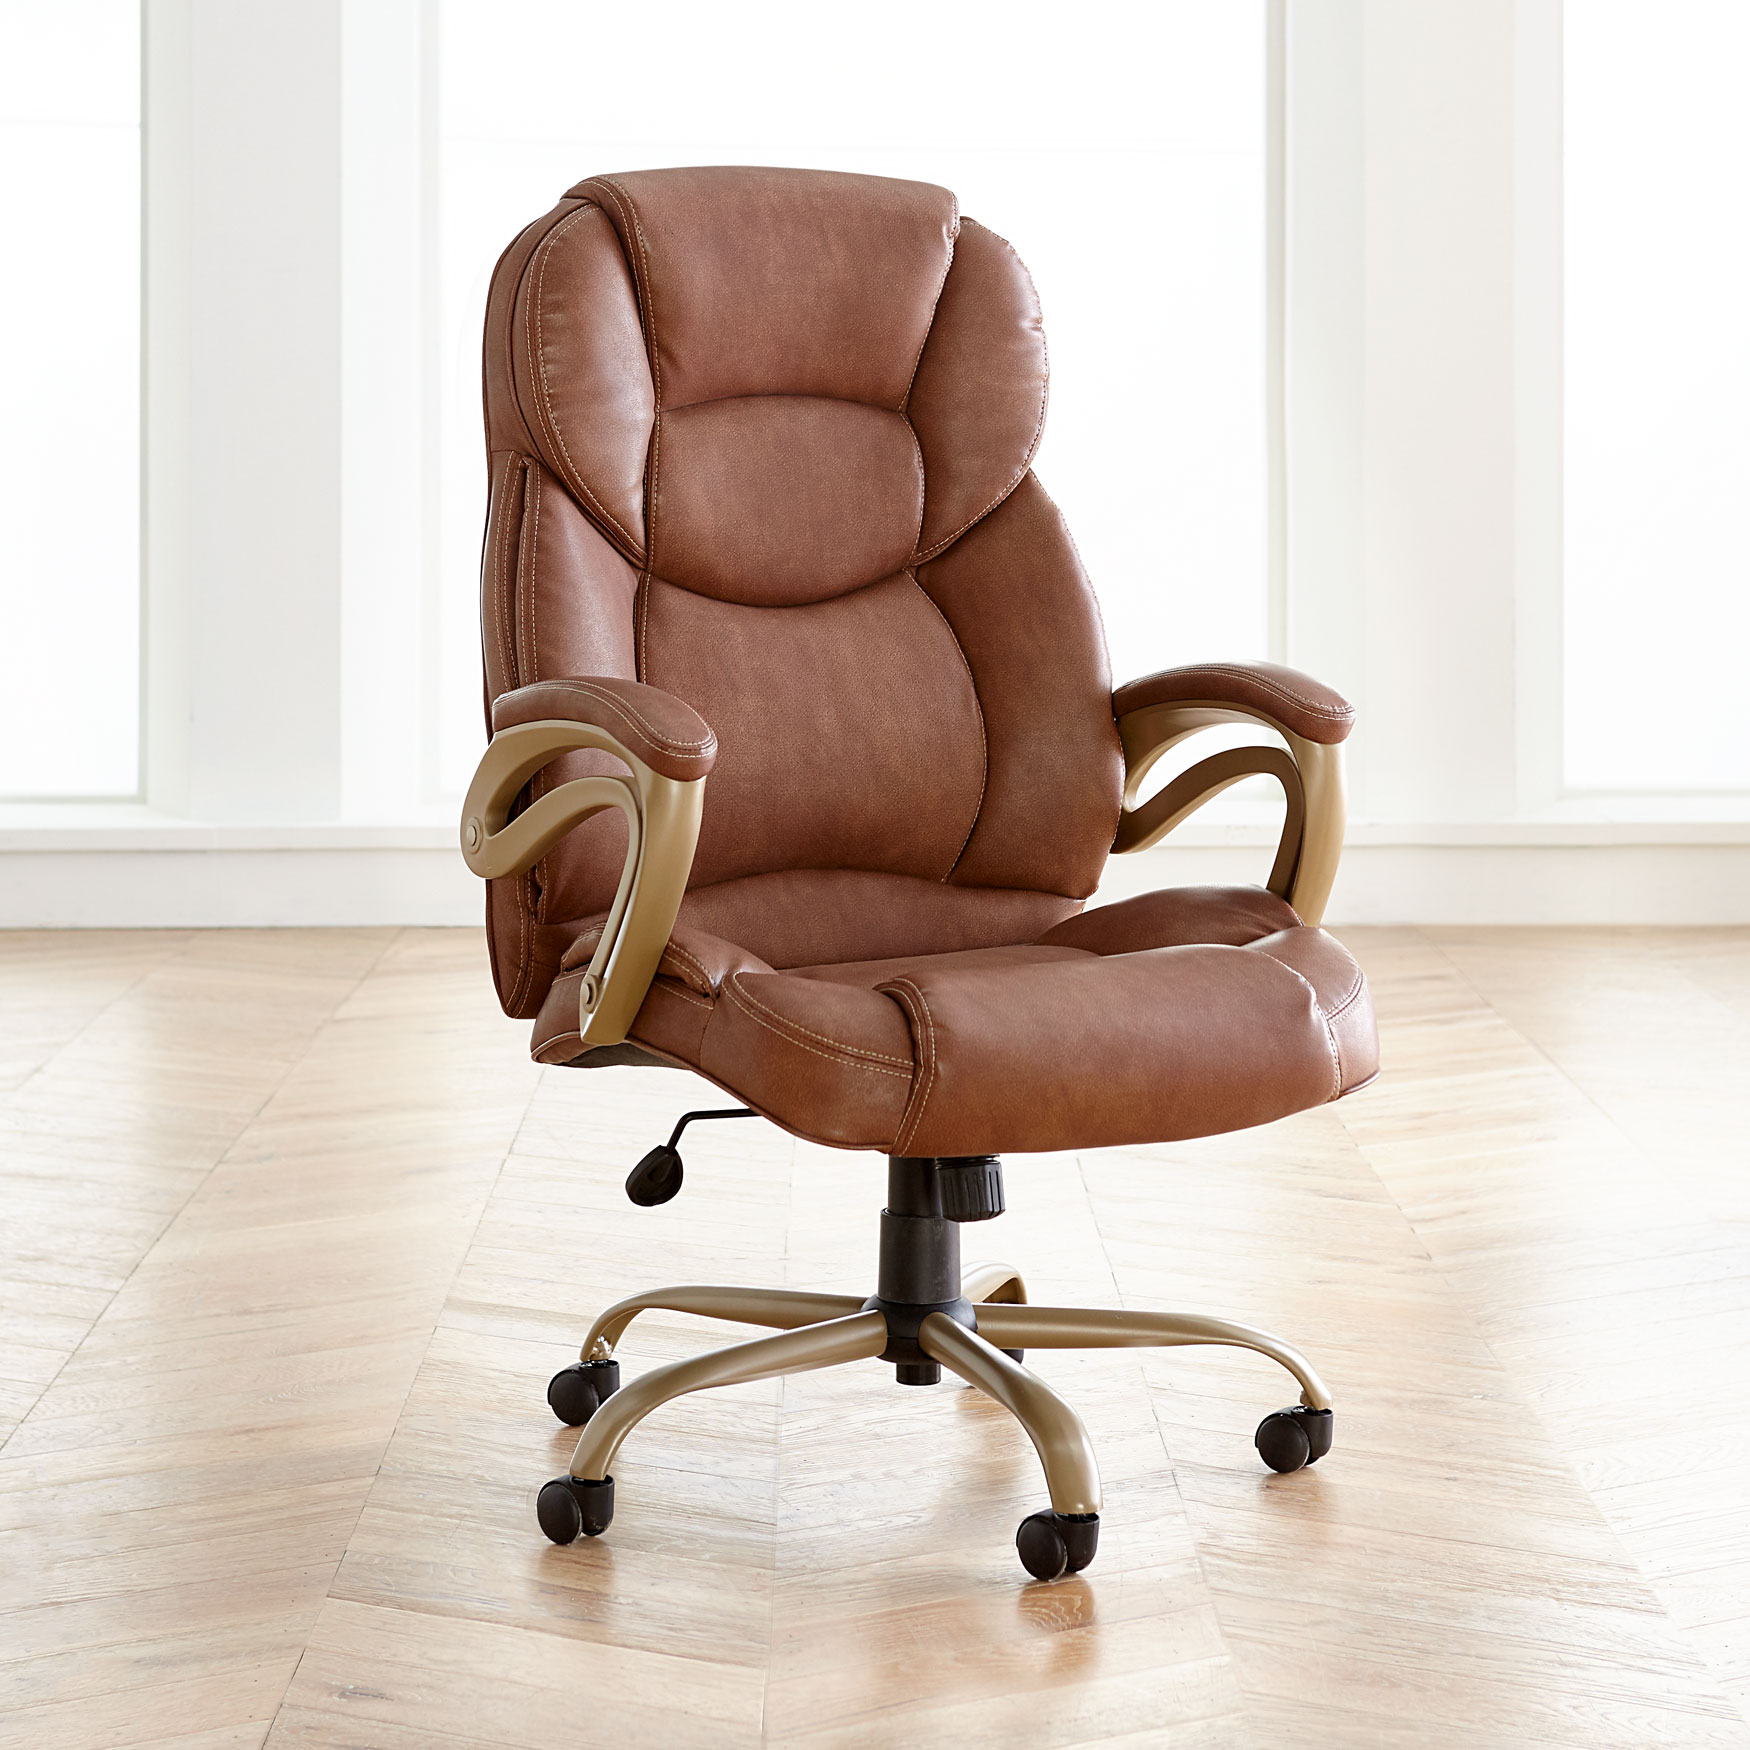 Extra Wide Memory Foam Office Chair | Plus Size Chairs ...